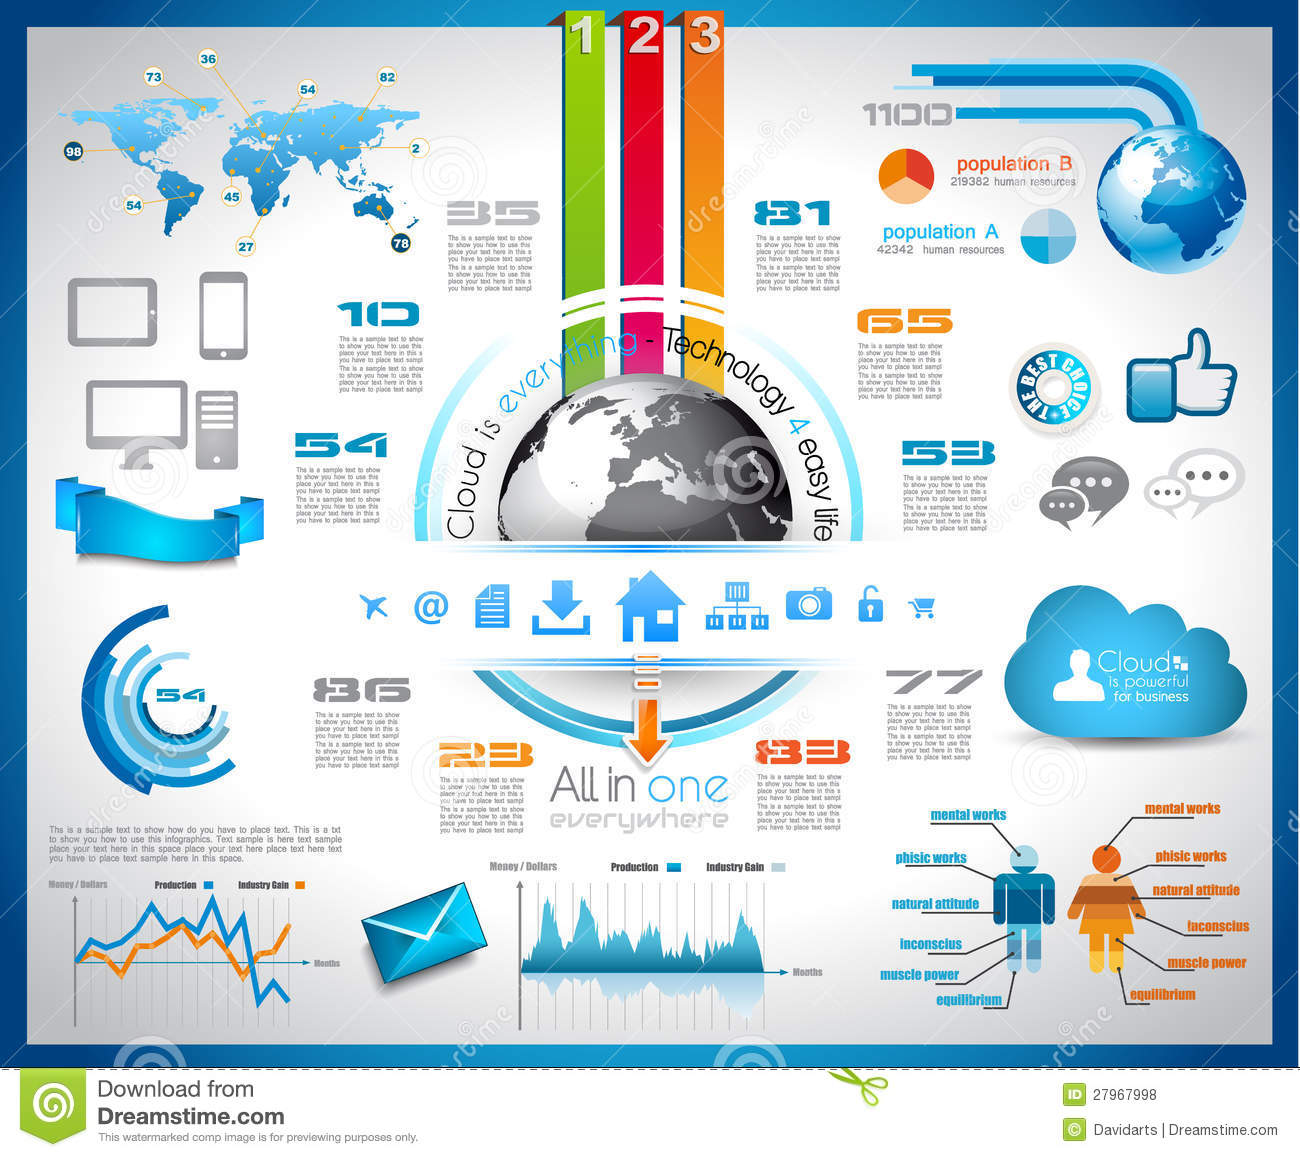 latest research papers on cloud computing 11th ieee international conference on cloud computing (ieee  cloud 2018) since 2009  to exchange the latest fundamental advances in  the state of the art and practice of cloud computing, identify emerging research  topics,.